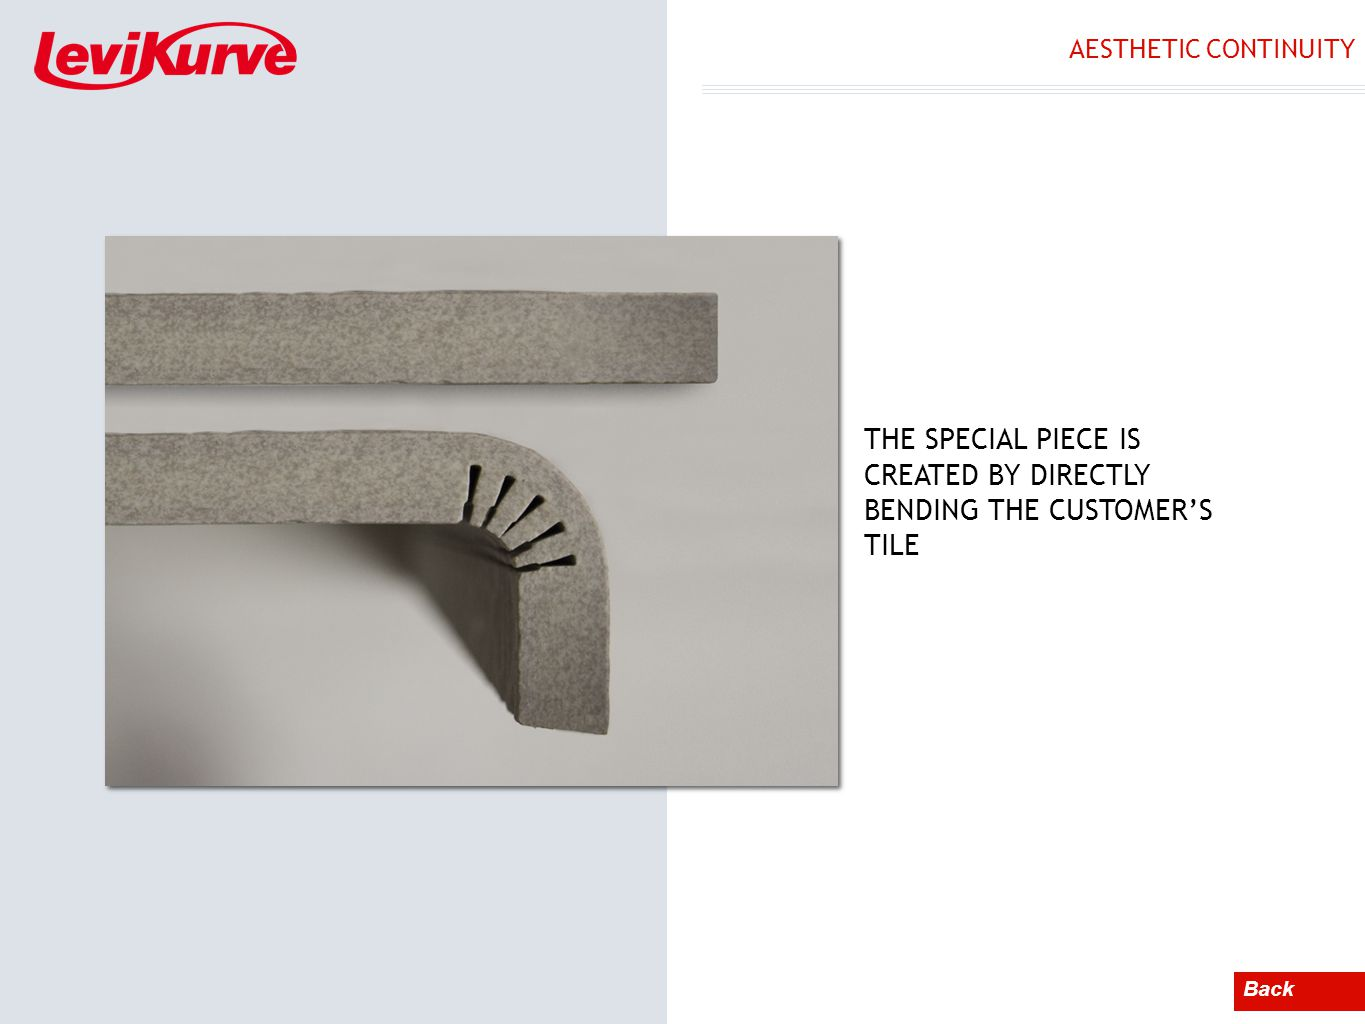 AESTHETIC CONTINUITY Back THE SPECIAL PIECE IS CREATED BY DIRECTLY BENDING THE CUSTOMERS TILE